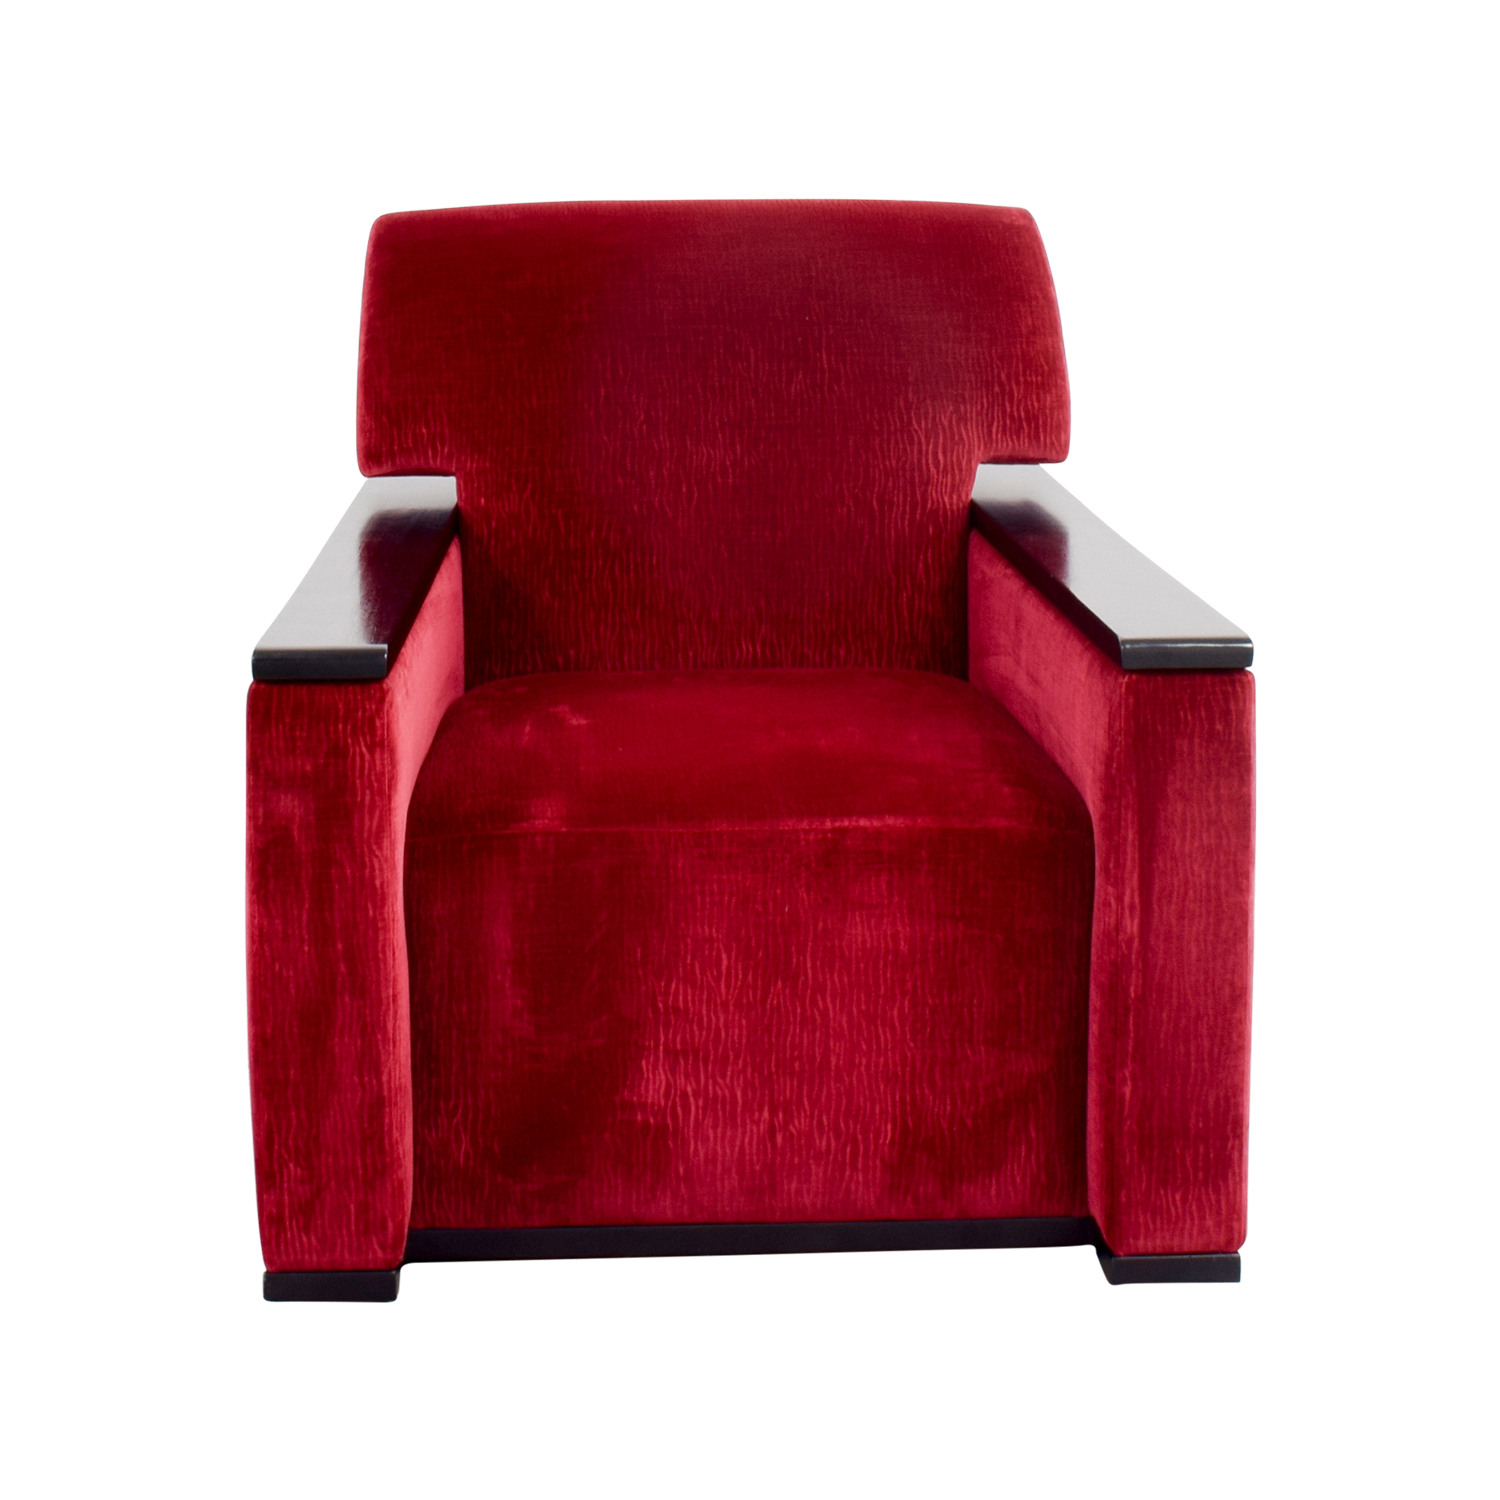 Red Arm Chair With Black Accents Used